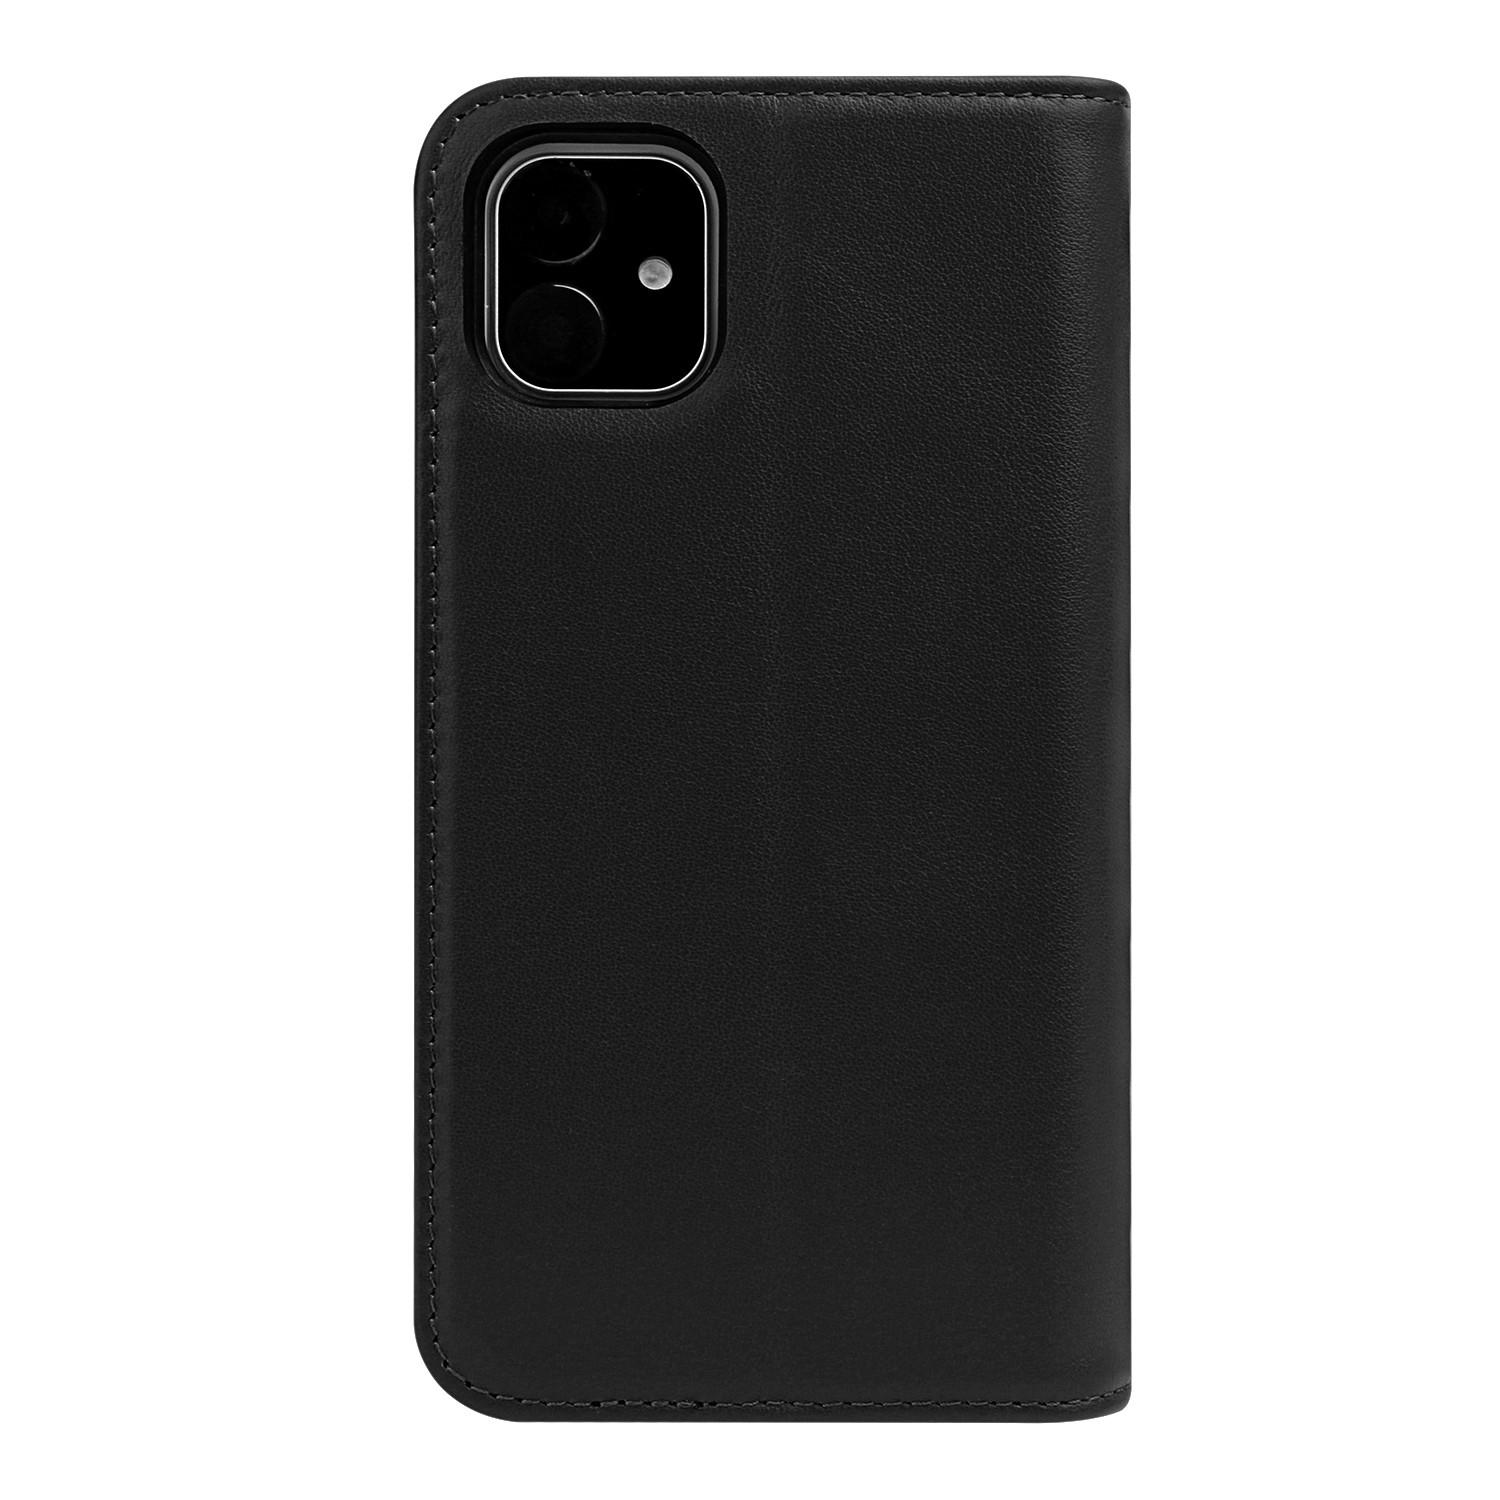 AIVI mobile back cover for iPhone 11 design for iPhone11-2